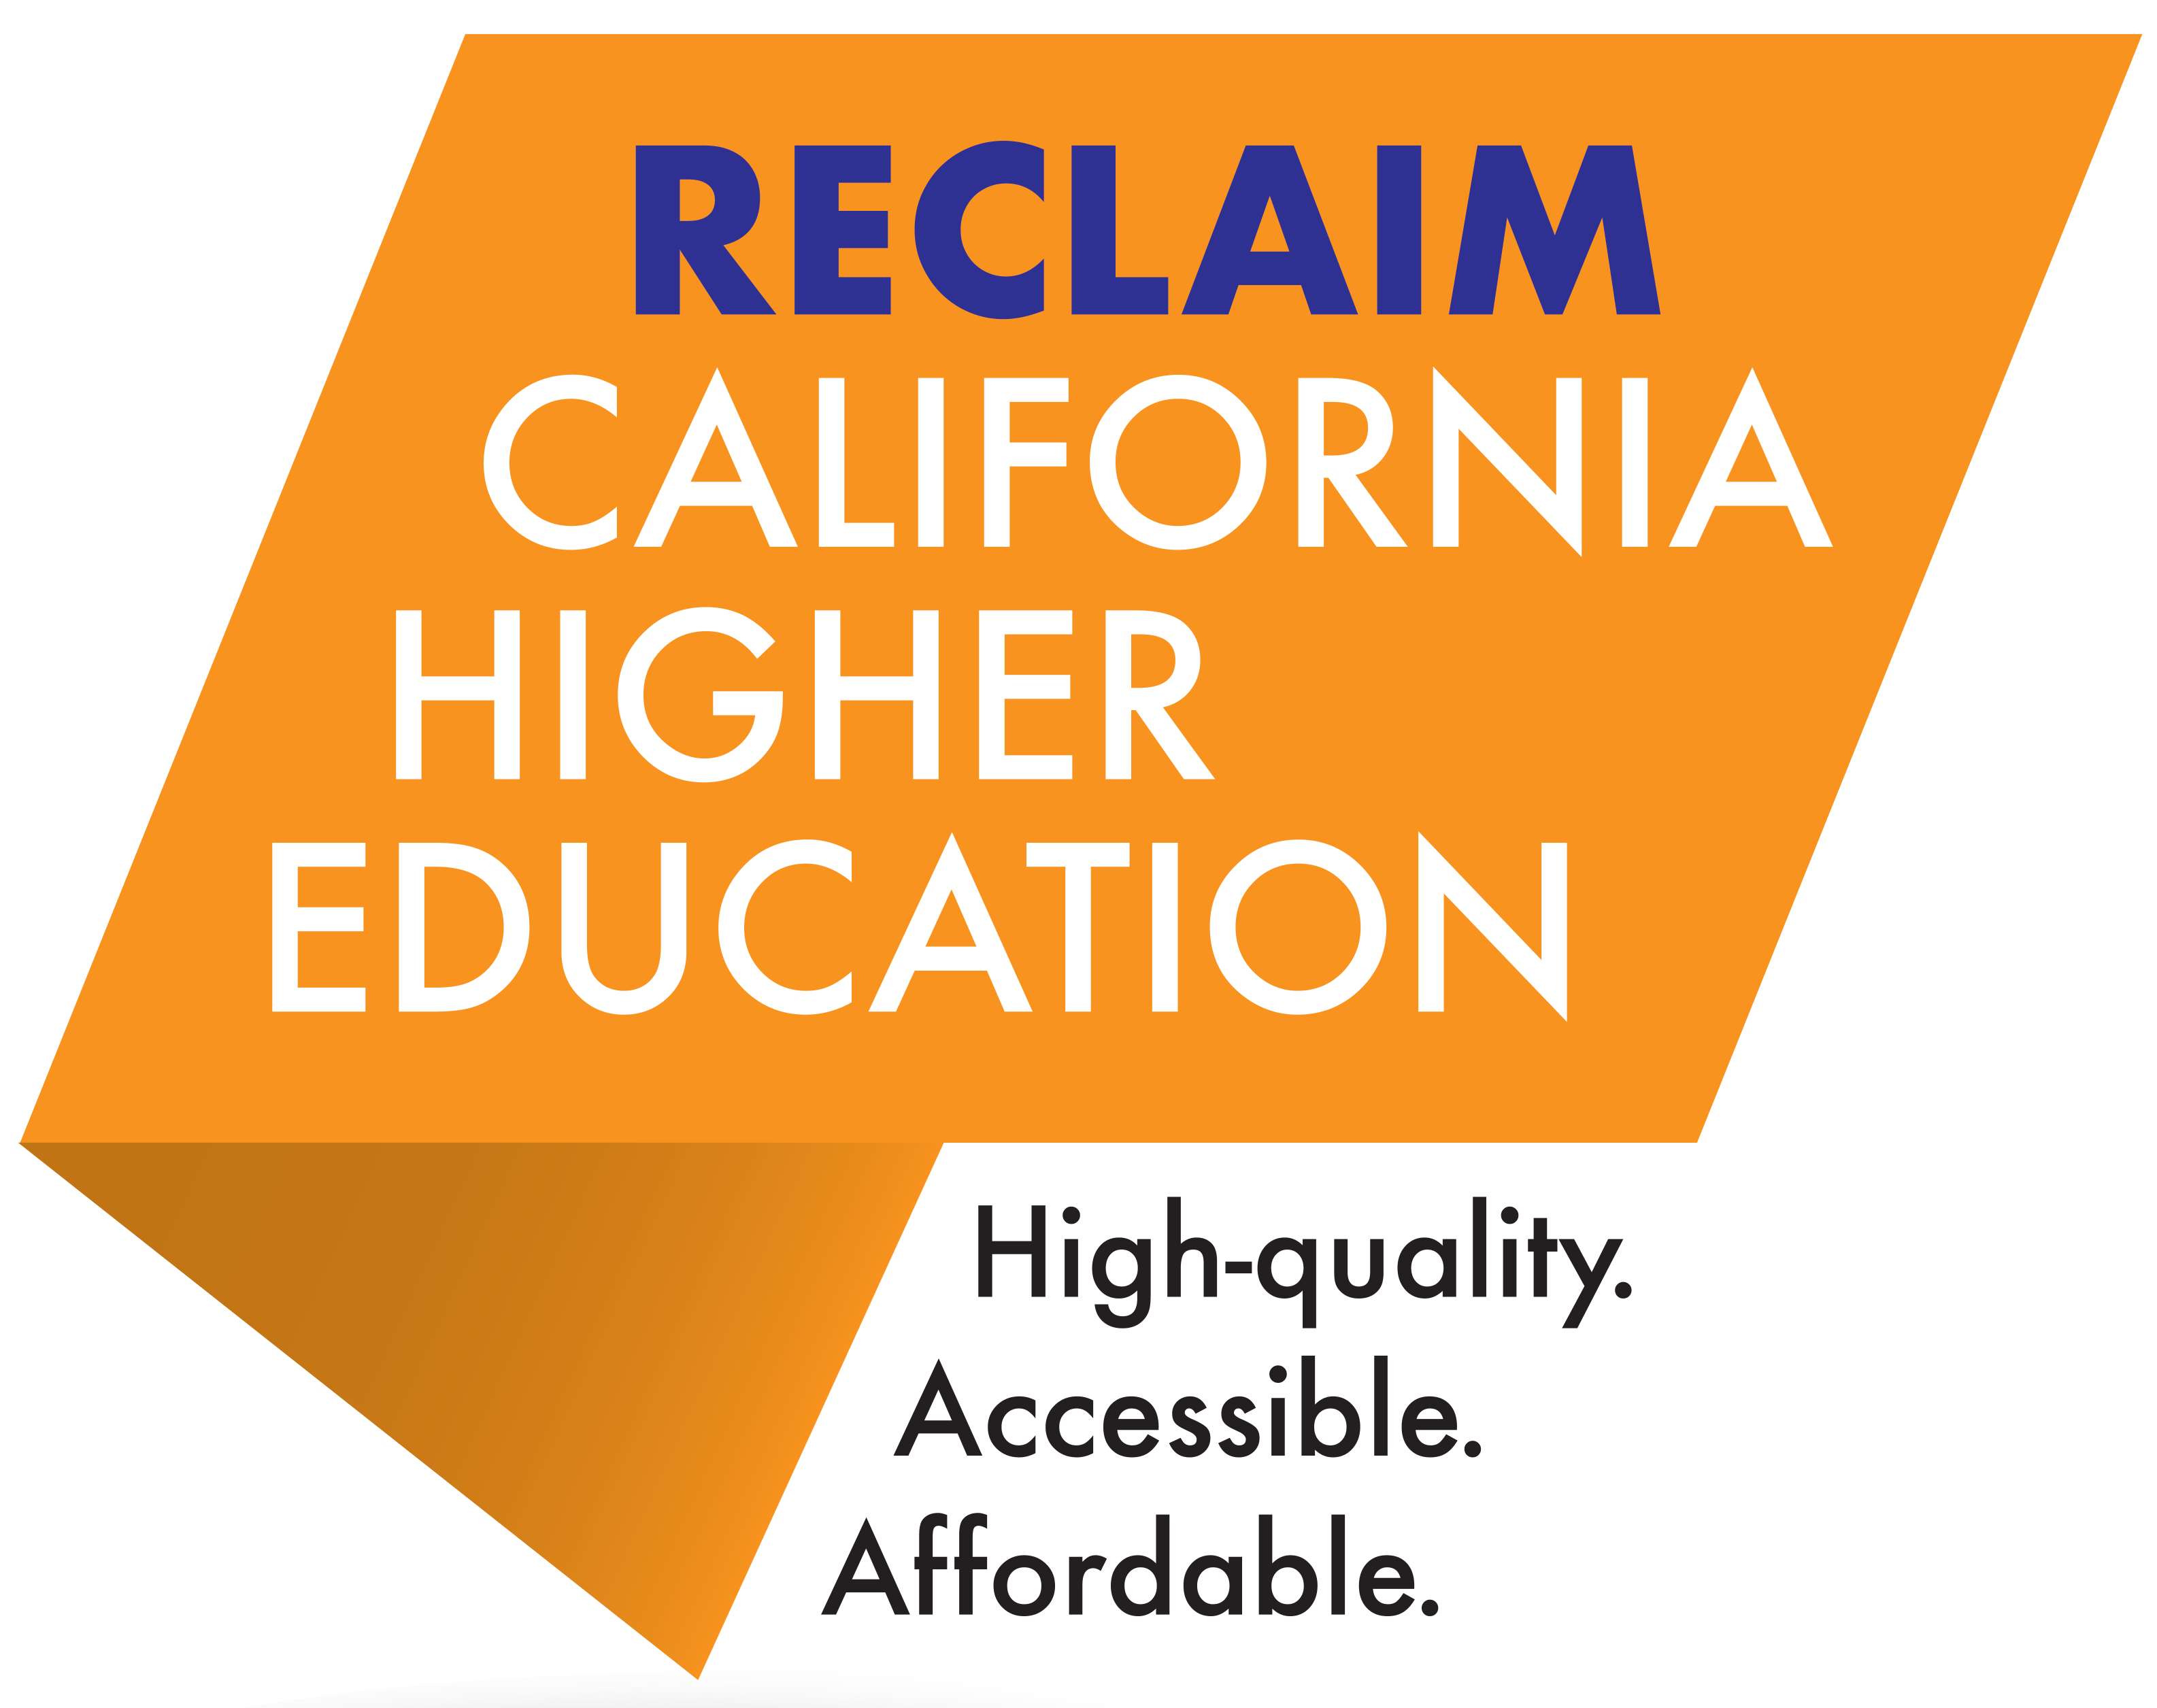 Reclaim Higher Education Coalition